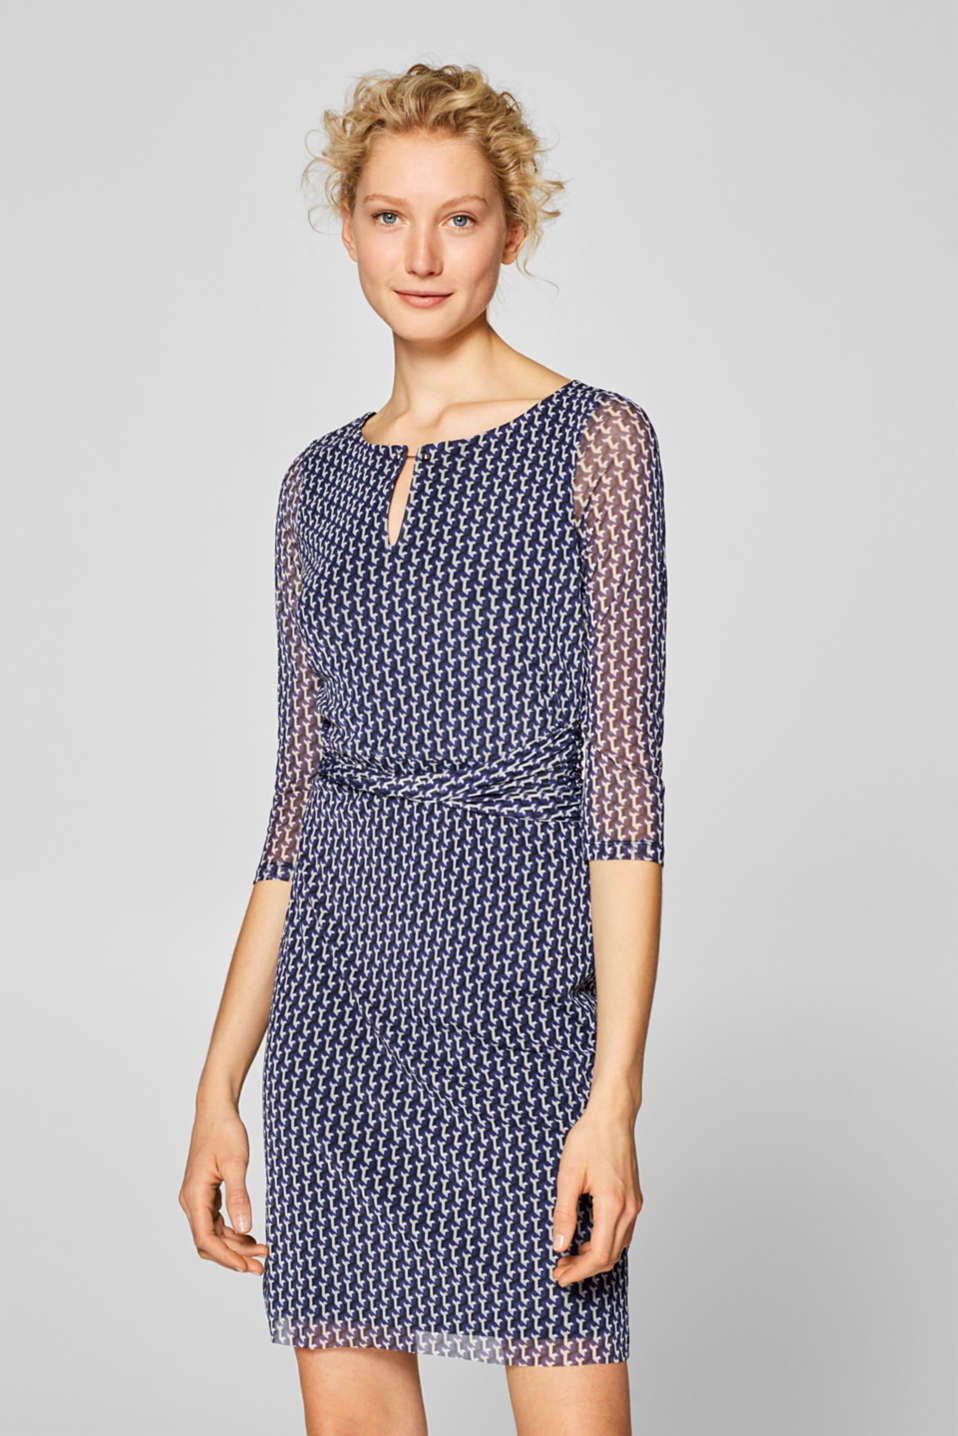 Esprit - Mesh dress with a print and draping details